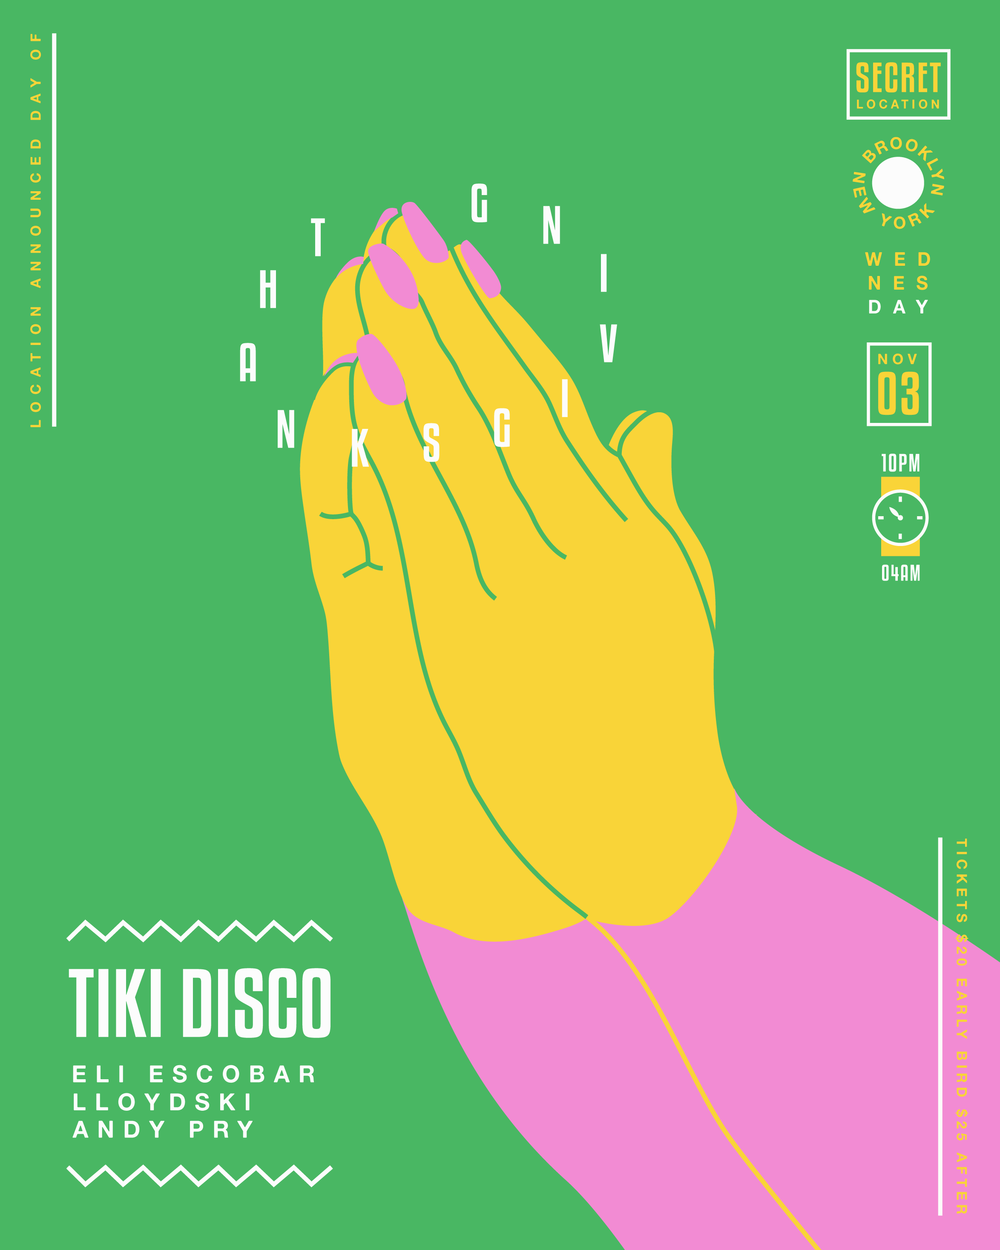 2016-11-01_tikidisco_poster_01.png